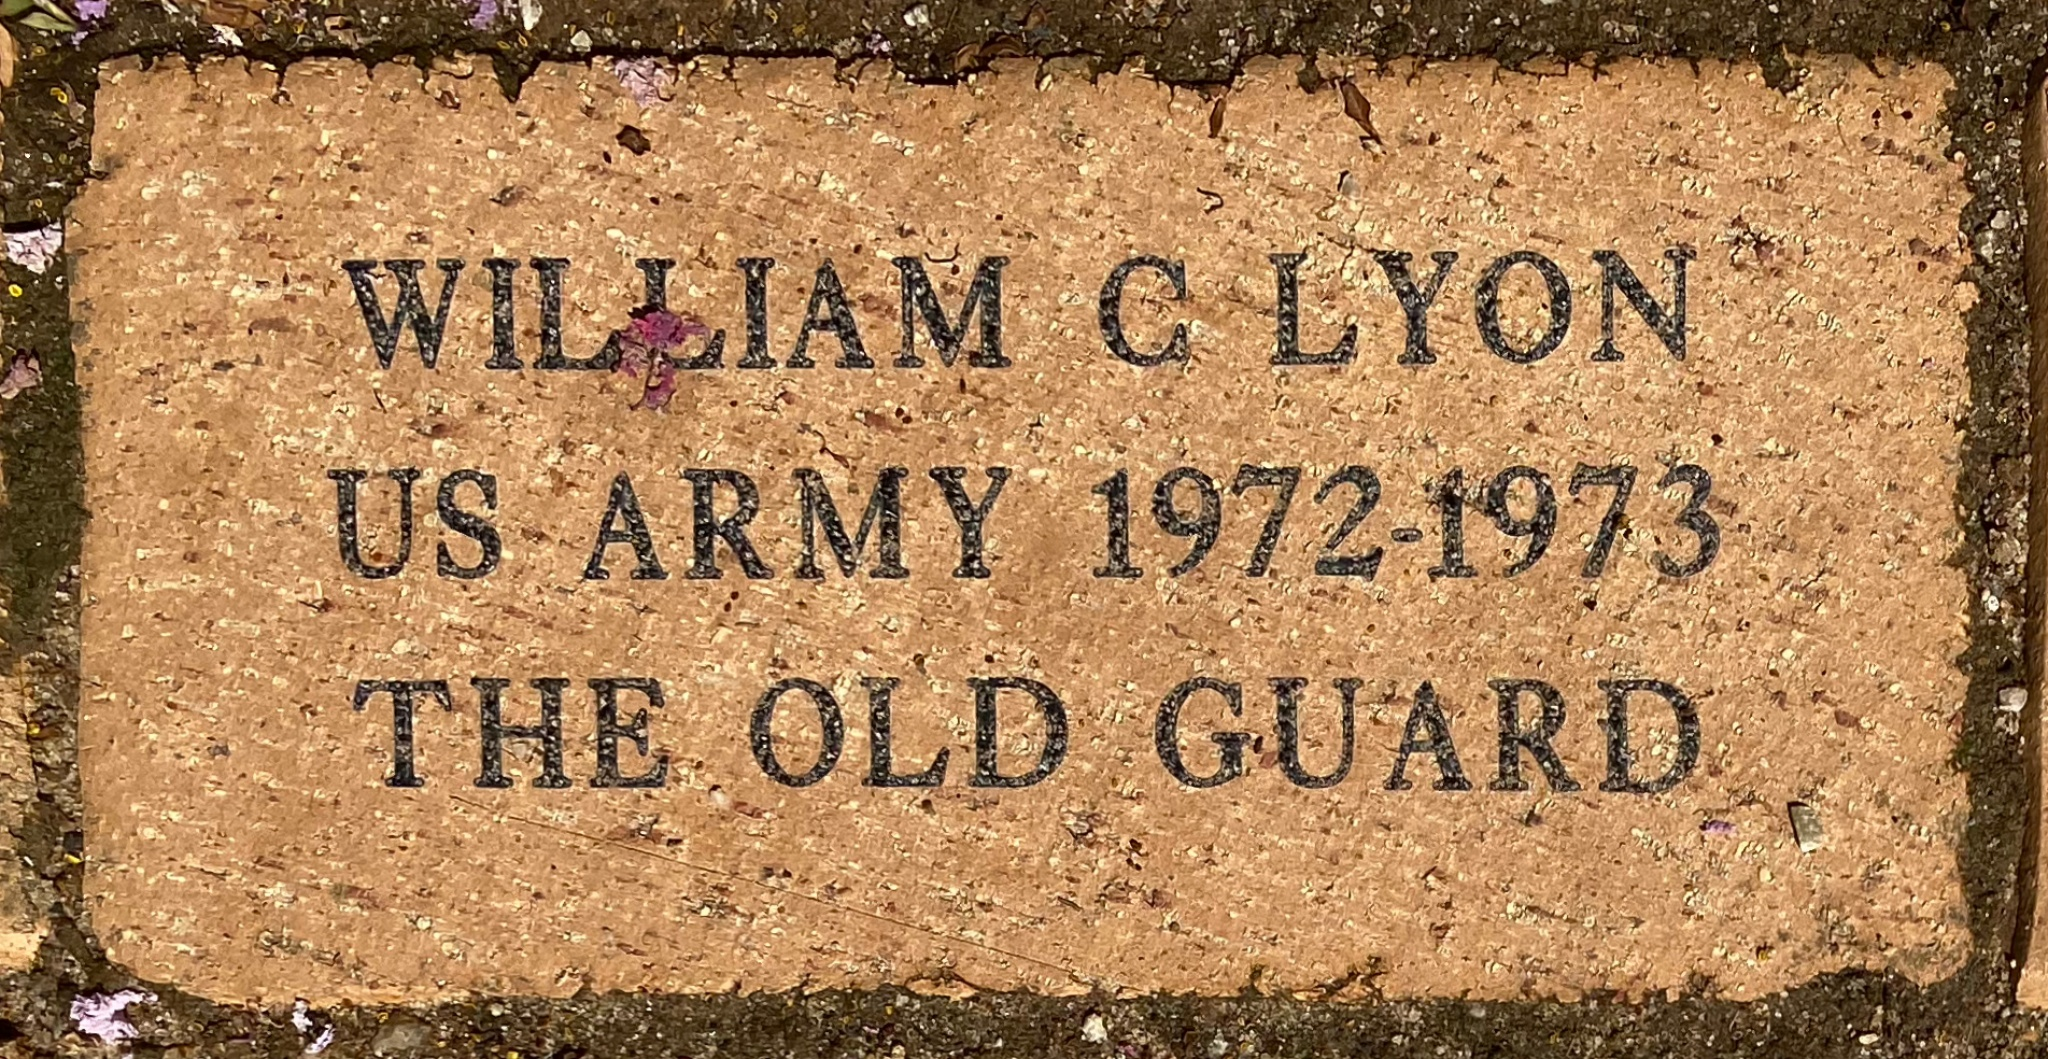 WILLIAM C LYON US ARMY 1972-1973 THE OLD GUARD